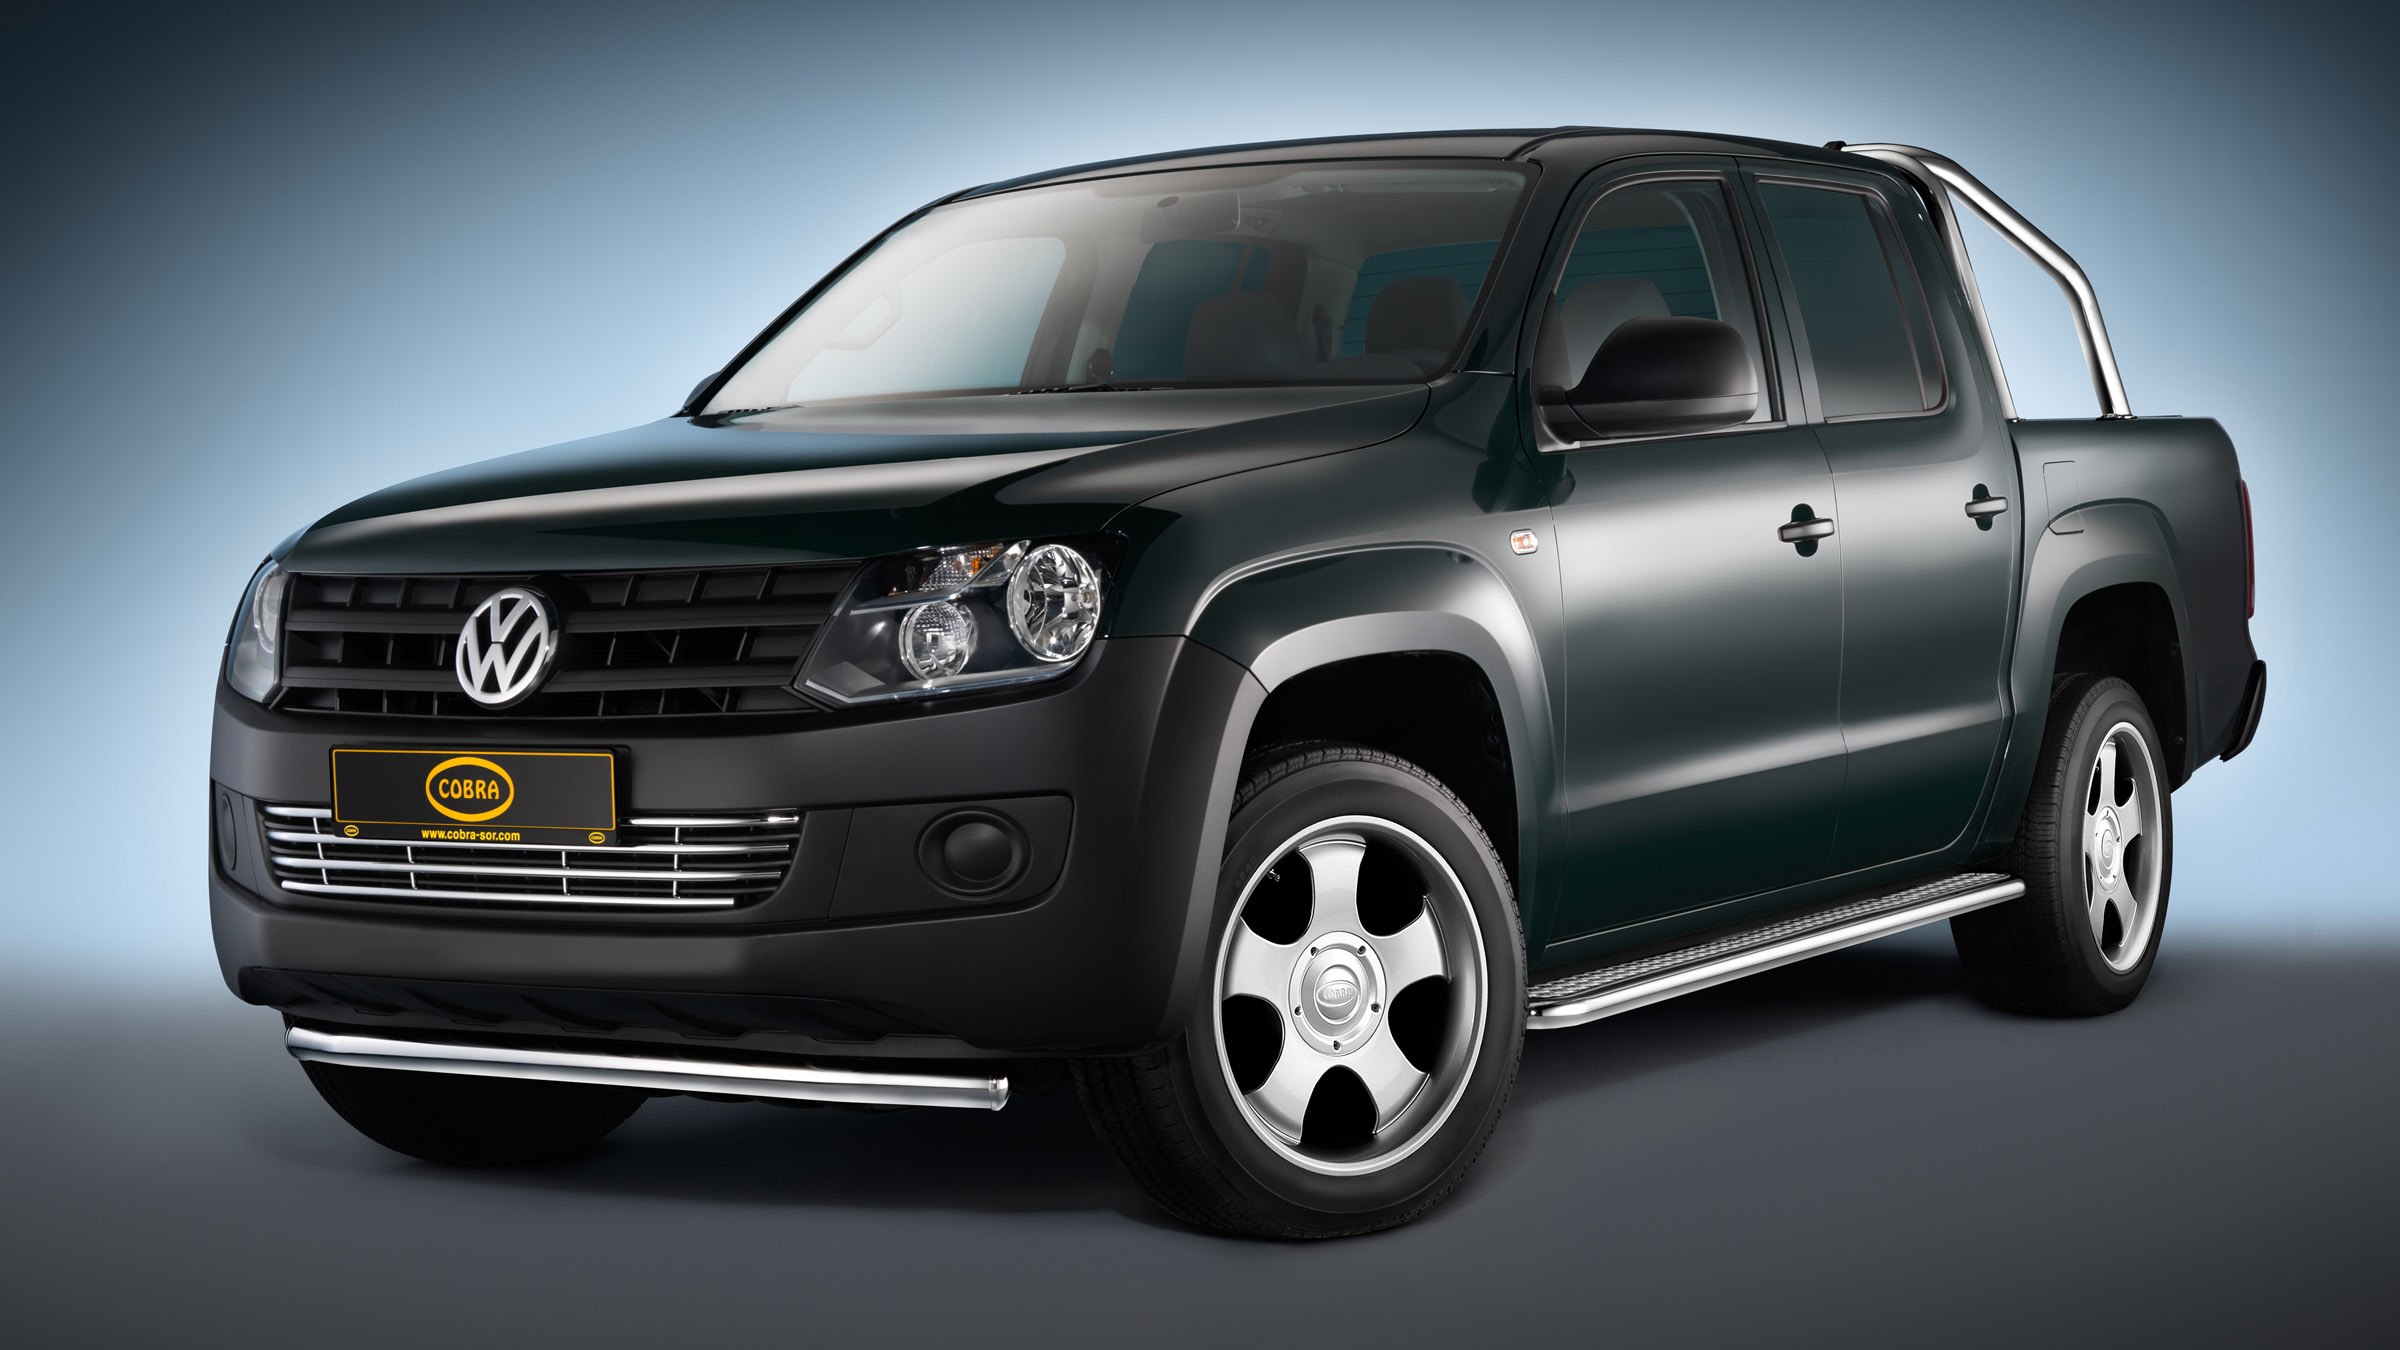 cobra technology lifestyle goodies for your vw amarok. Black Bedroom Furniture Sets. Home Design Ideas